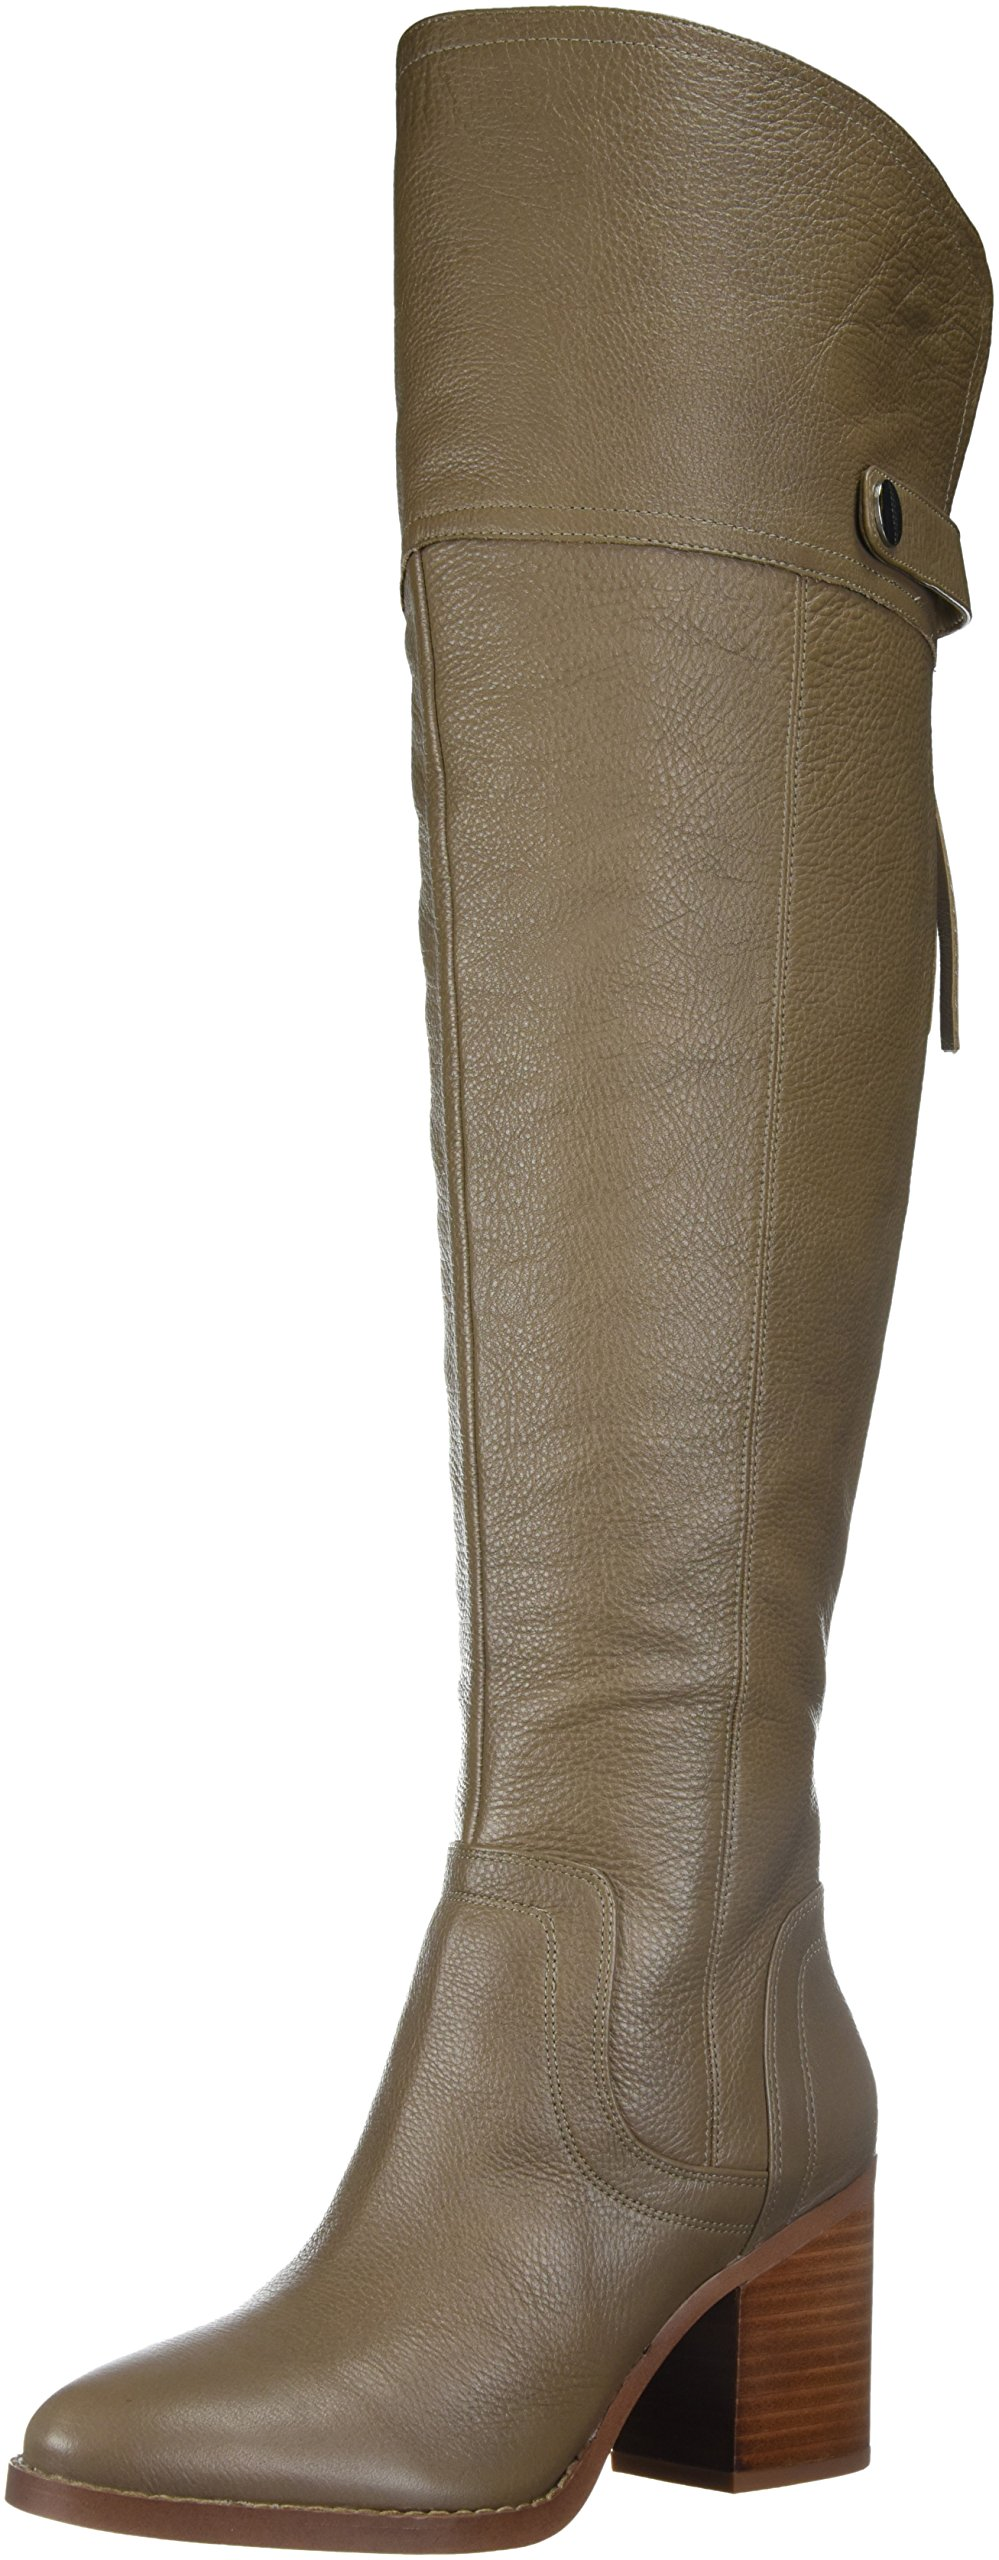 Franco Sarto Women's Ollie Calf Over The Knee Boot, Dover Taupe, 8 Medium/Wide Shaft US